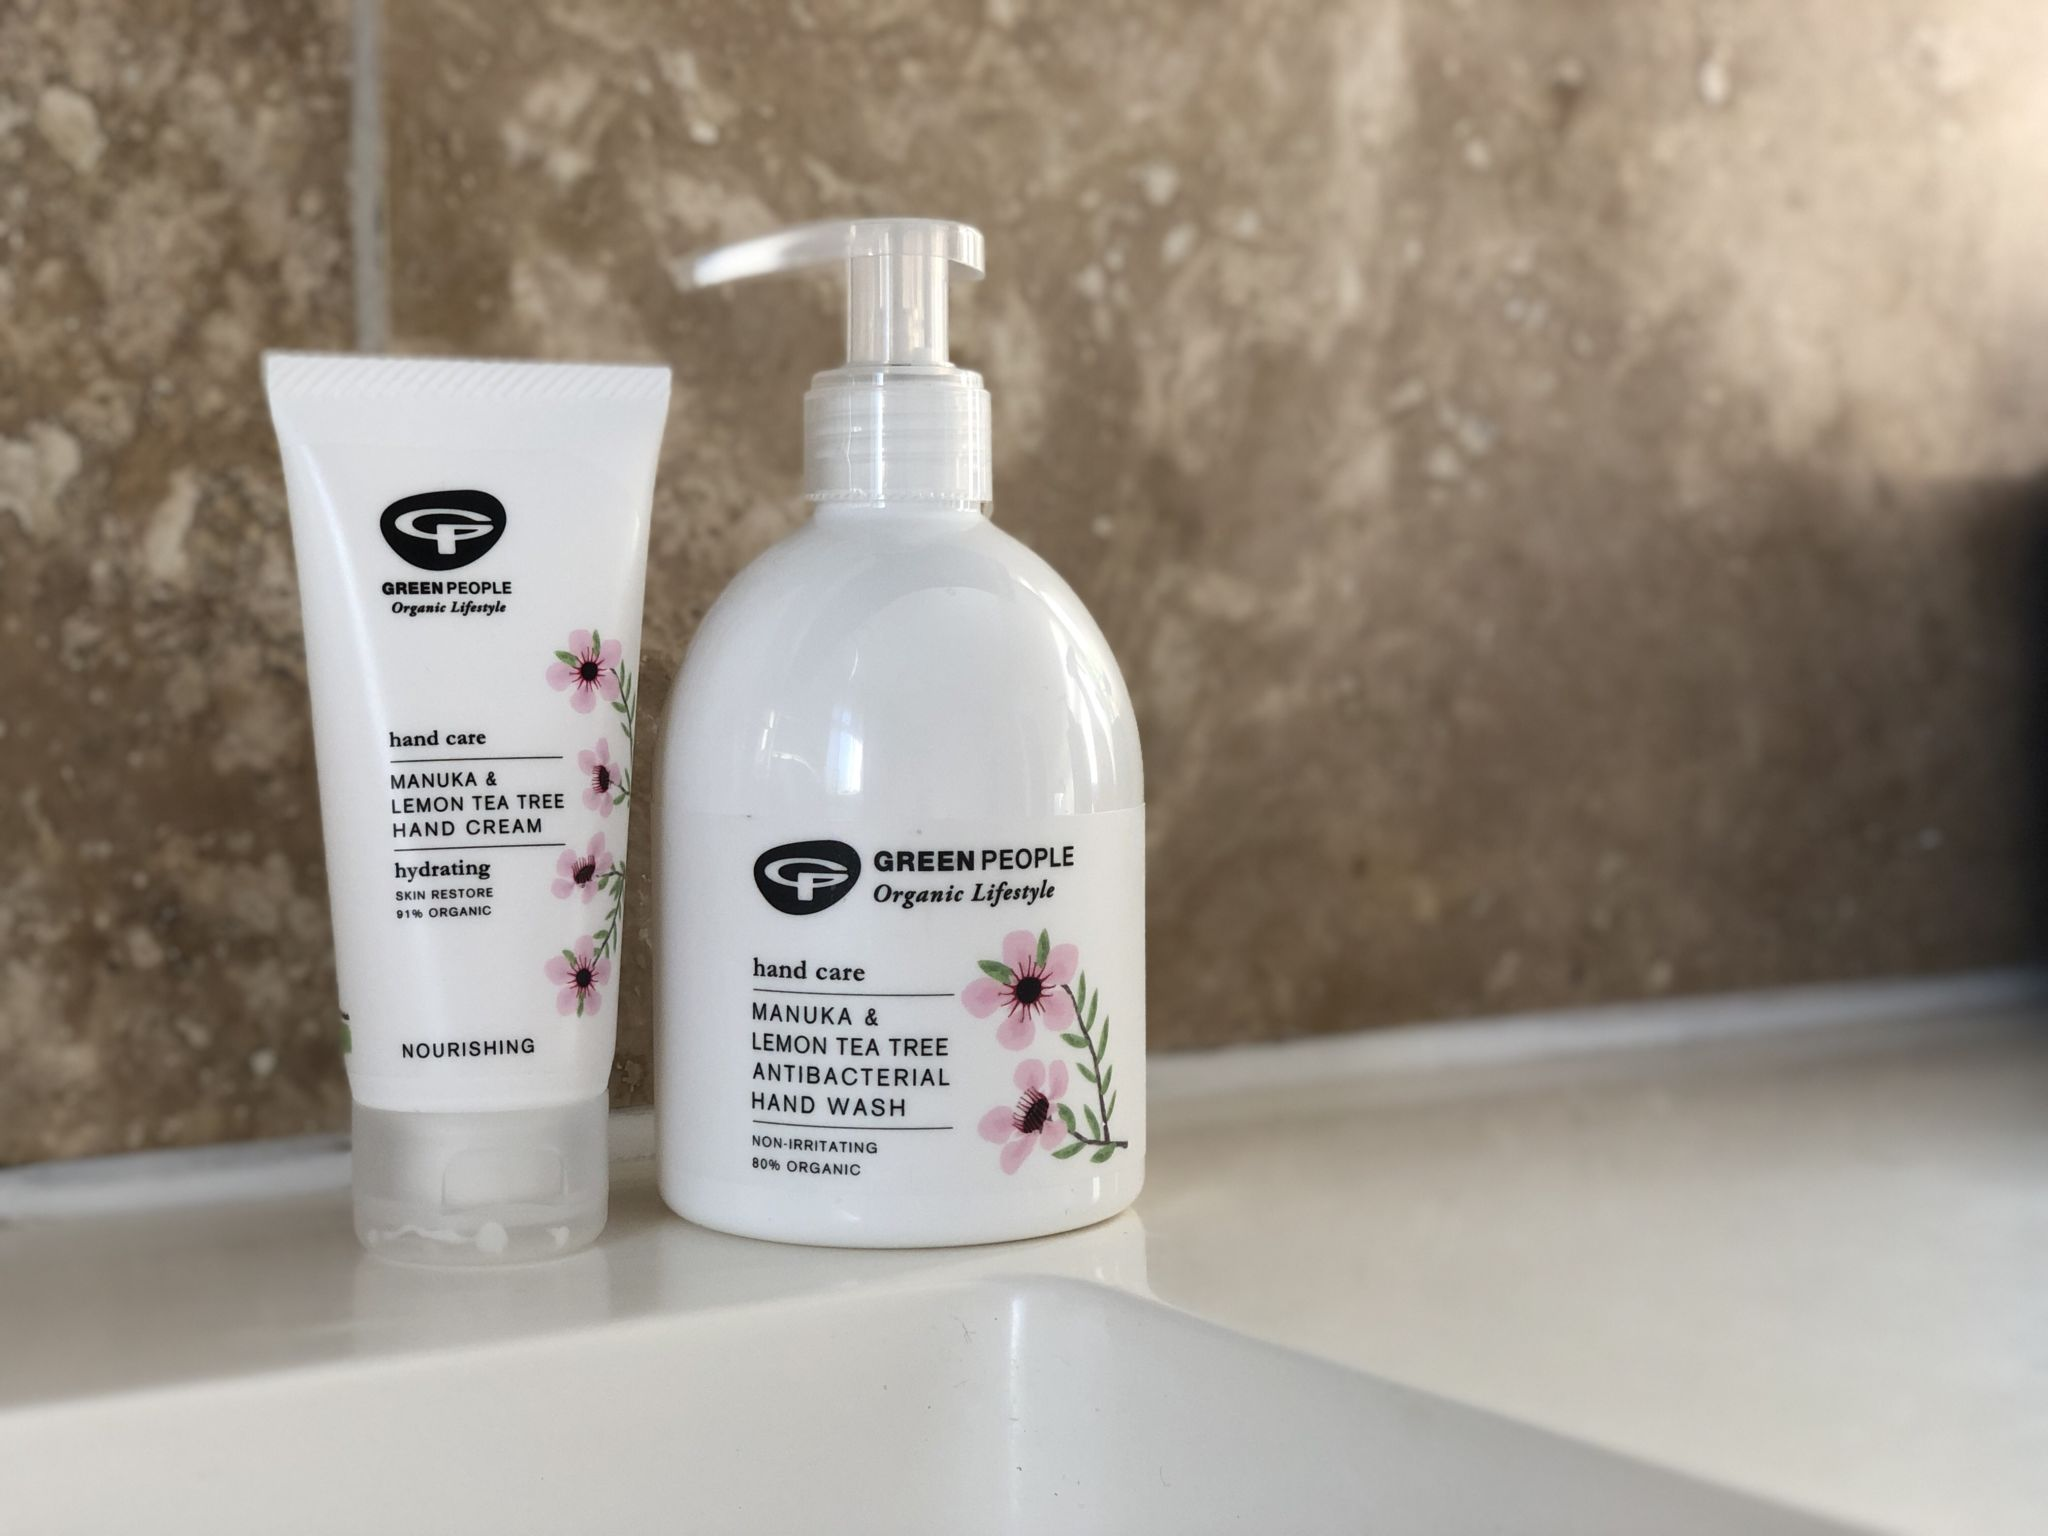 THE WINTER HAND CARE CHALLENGE WITH GREEN PEOPLE